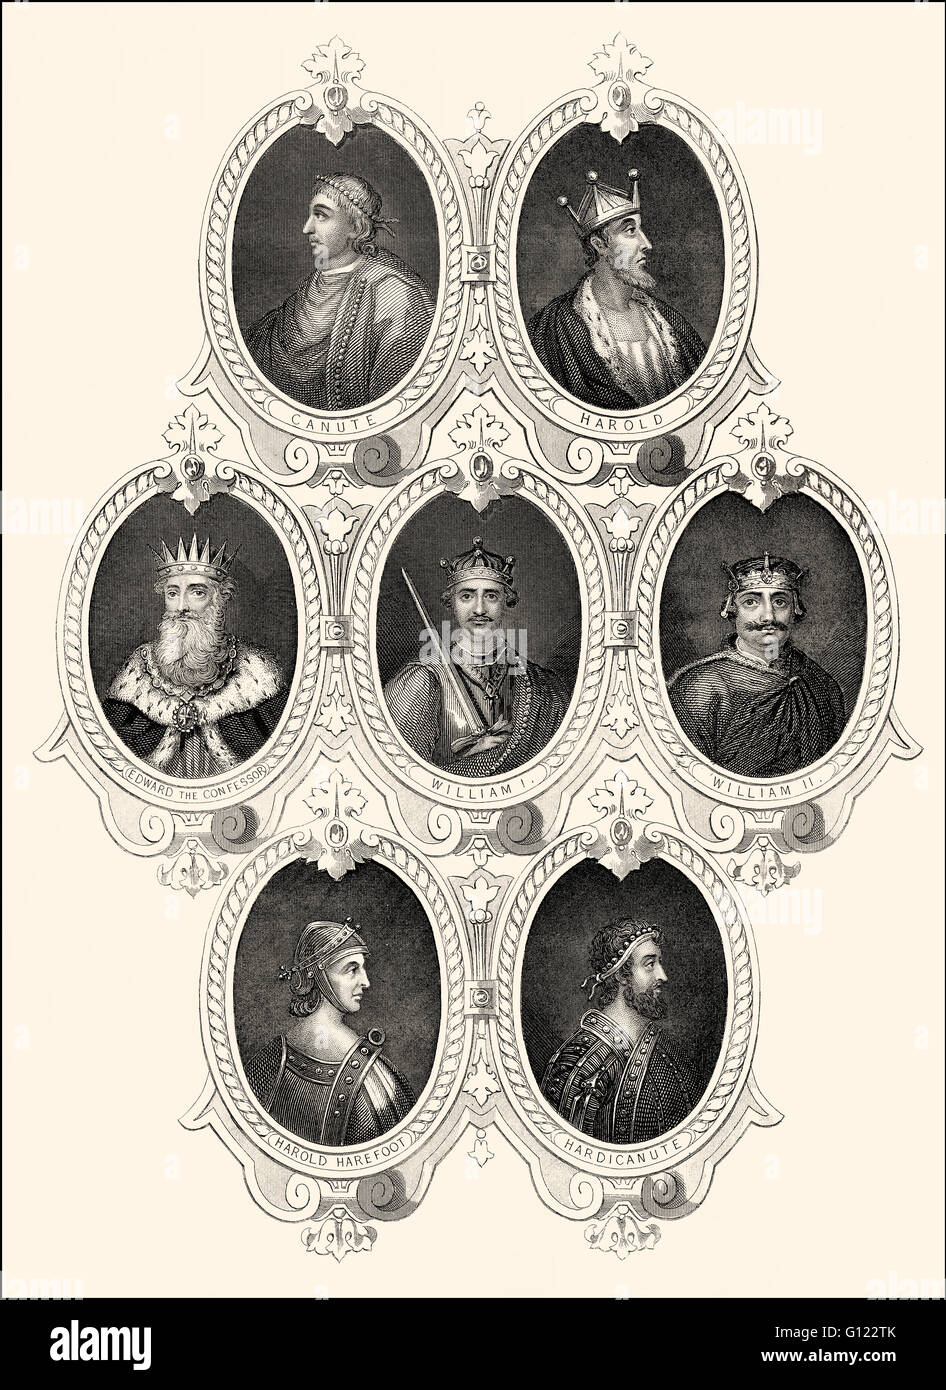 Kings of England, 10th and 11th century - Stock Image